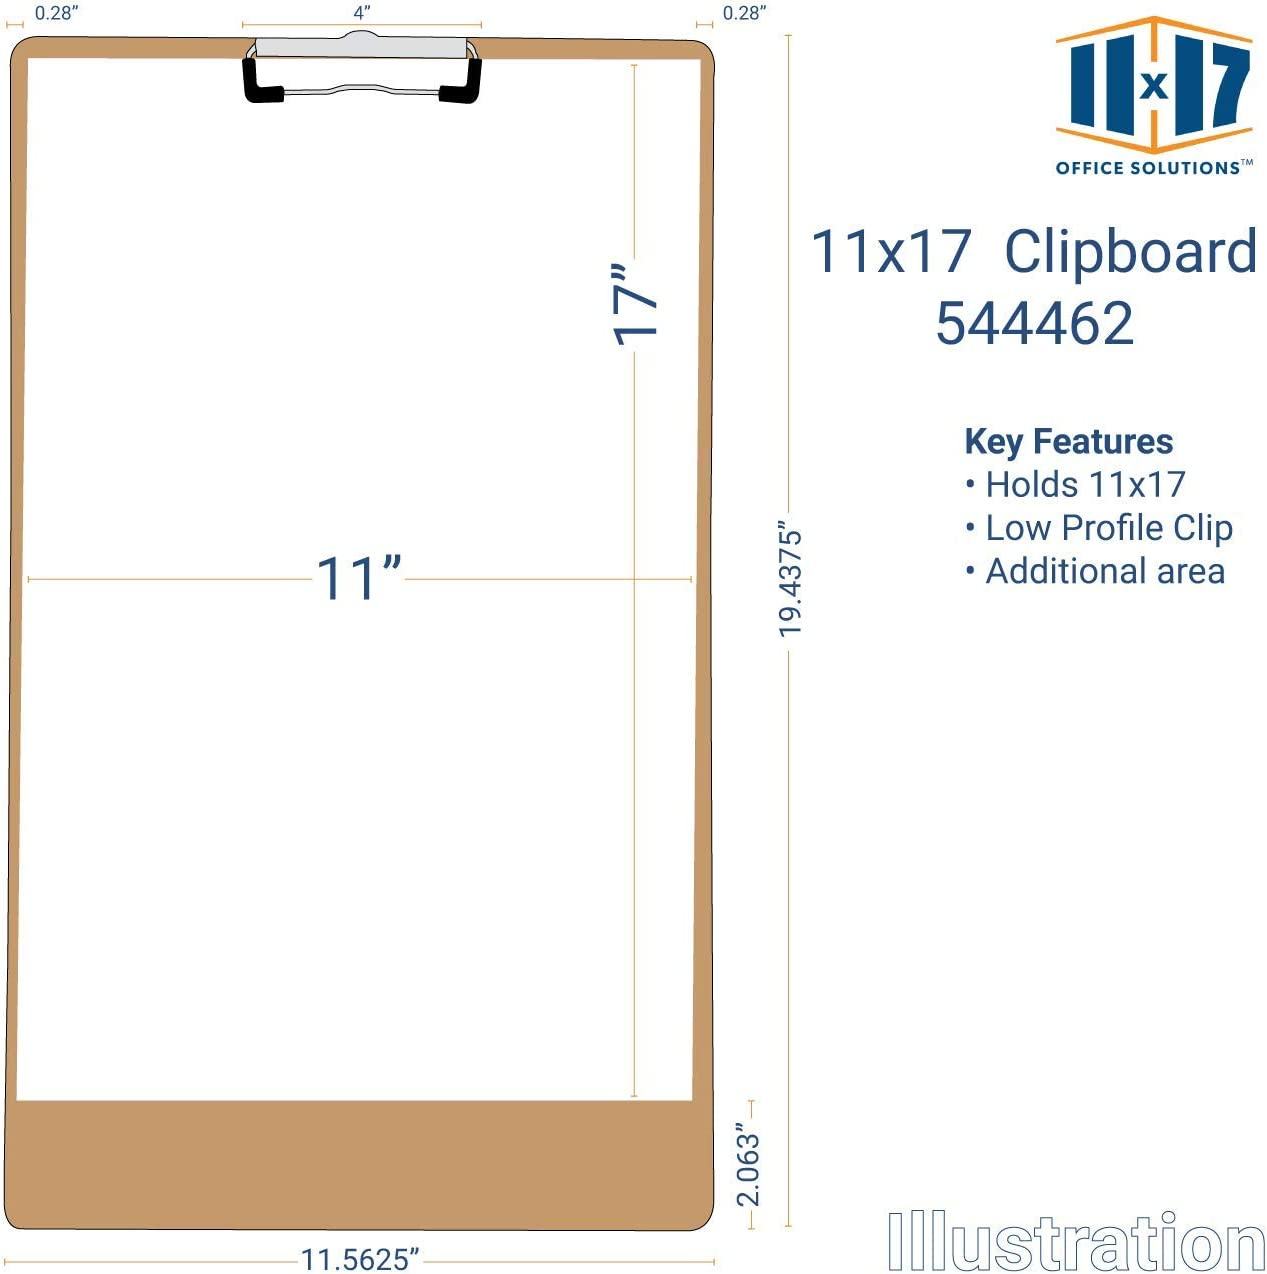 11x17 Clipboard Hardboard Panel Featuring a Low Profile Clip Light Brown